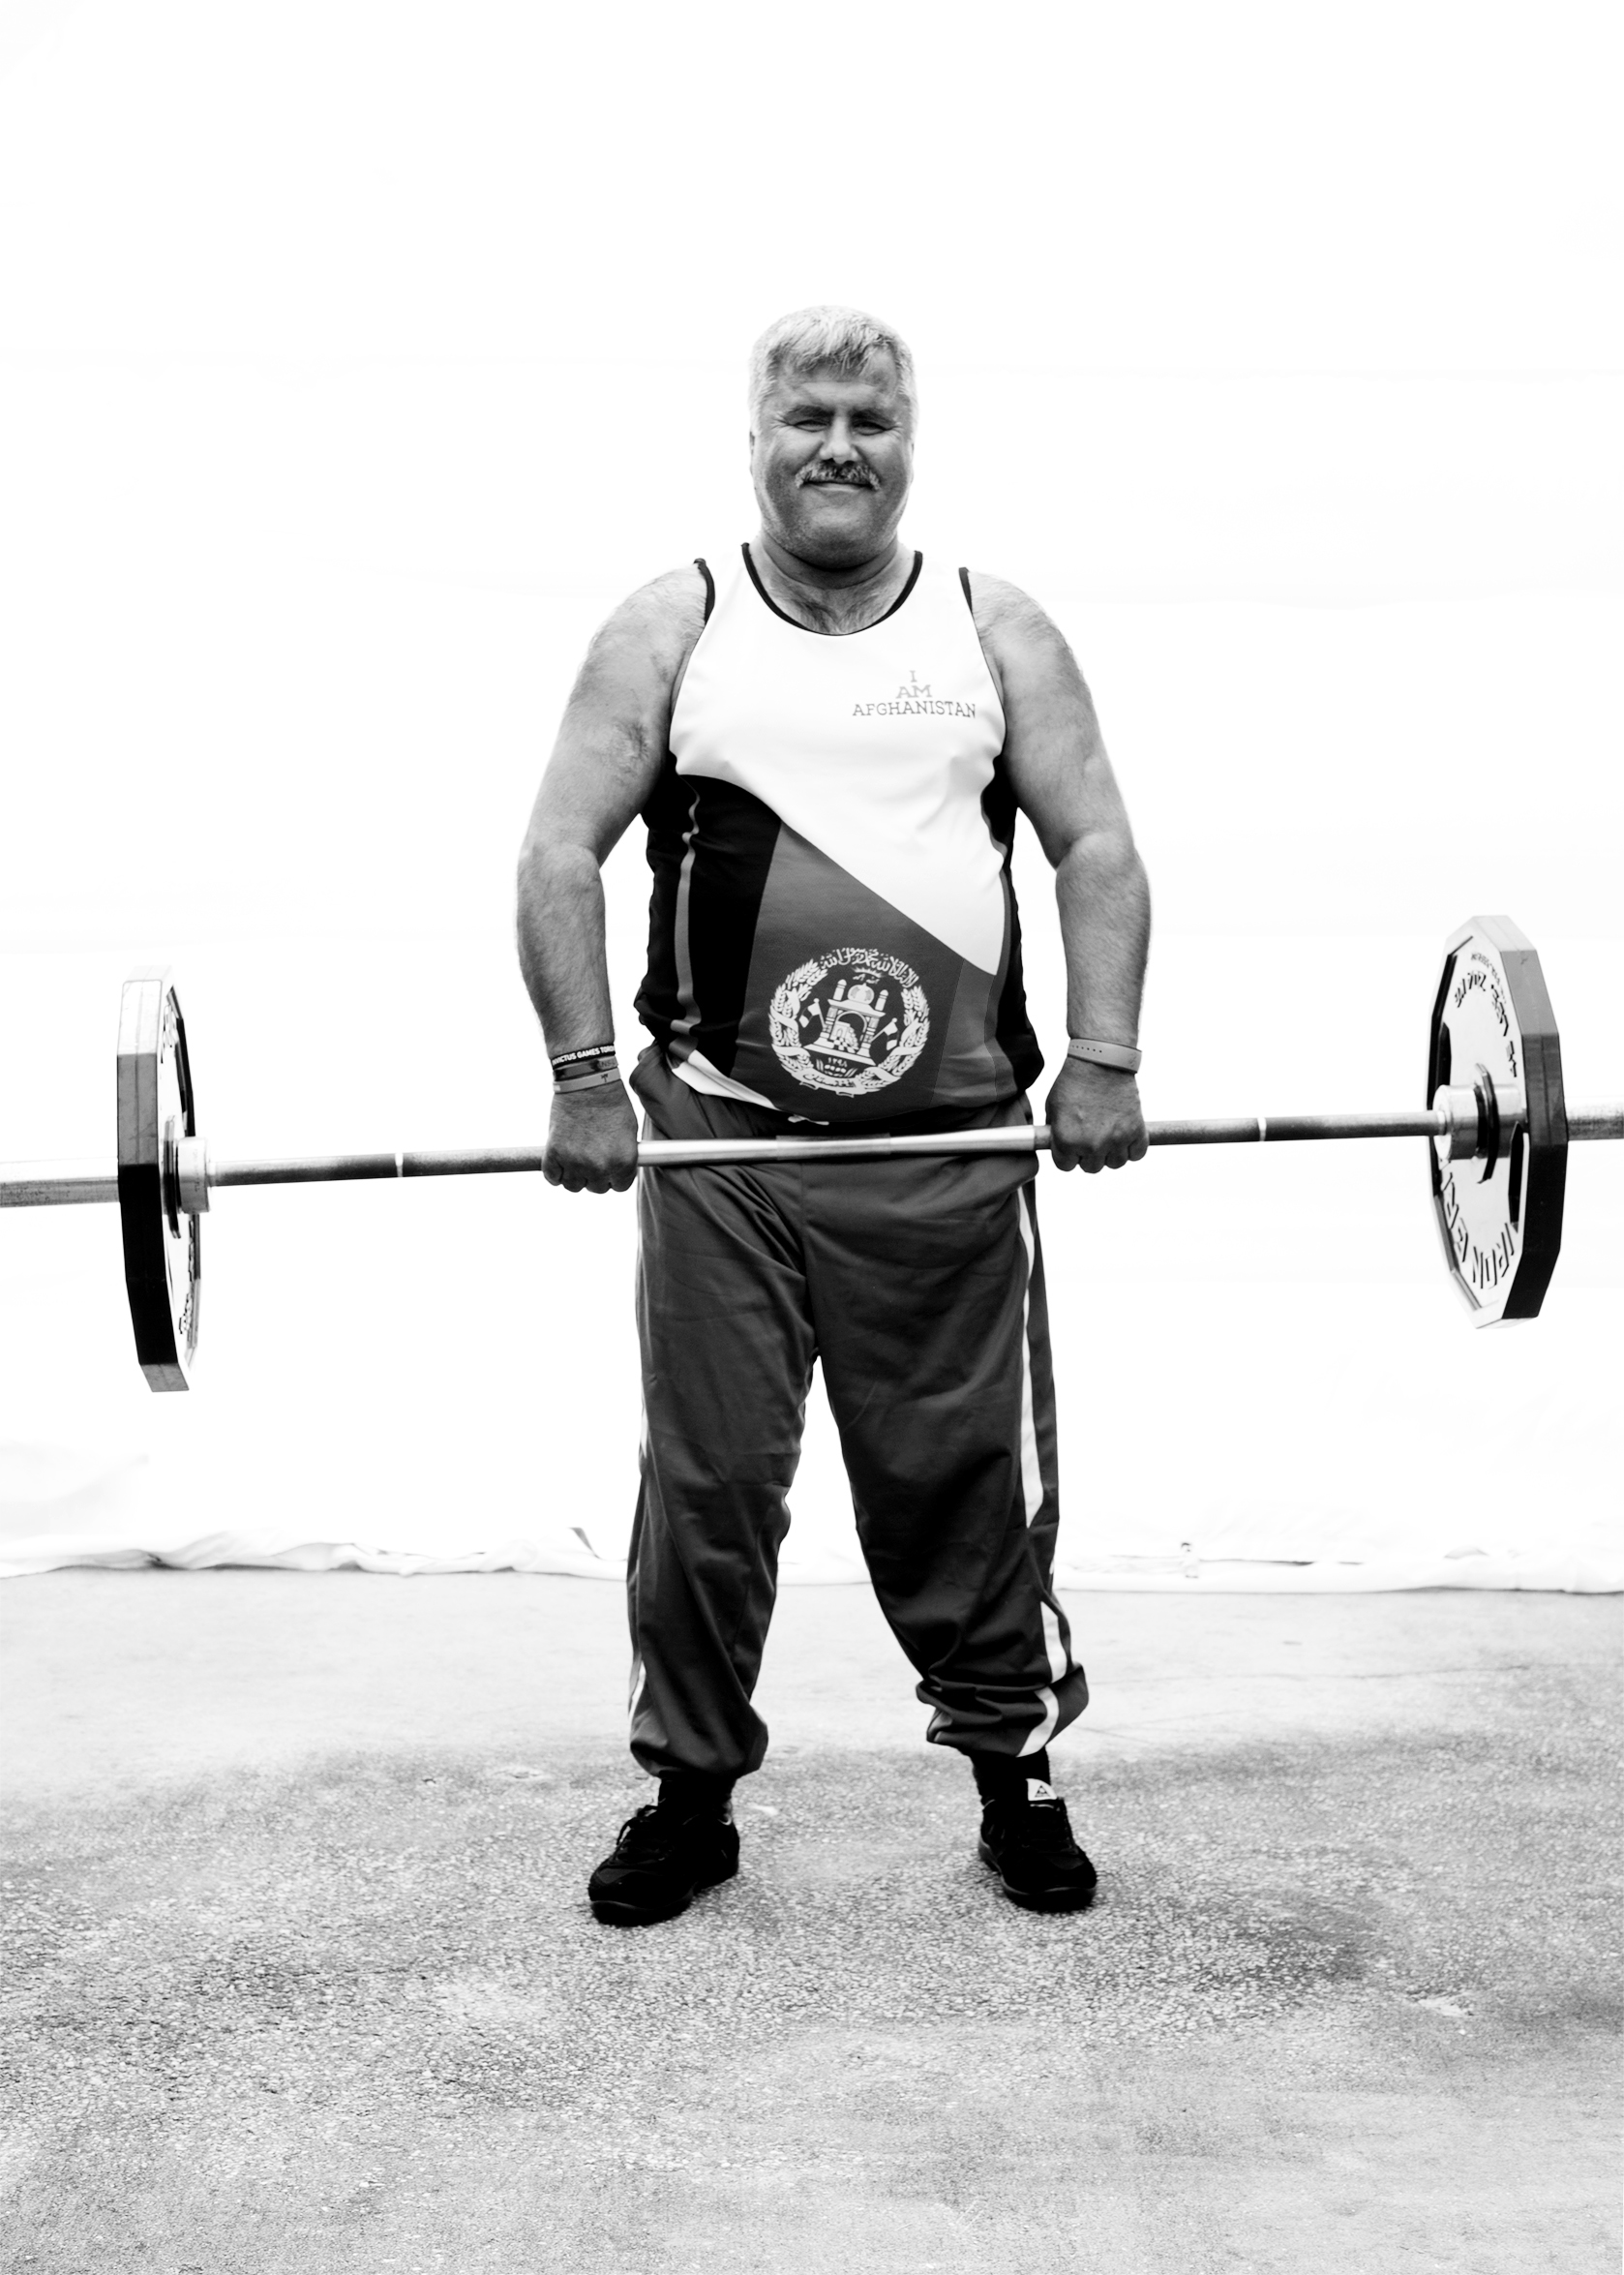 Abdul Ali Khil, Afghanistan, competed in powerlifting and rowing